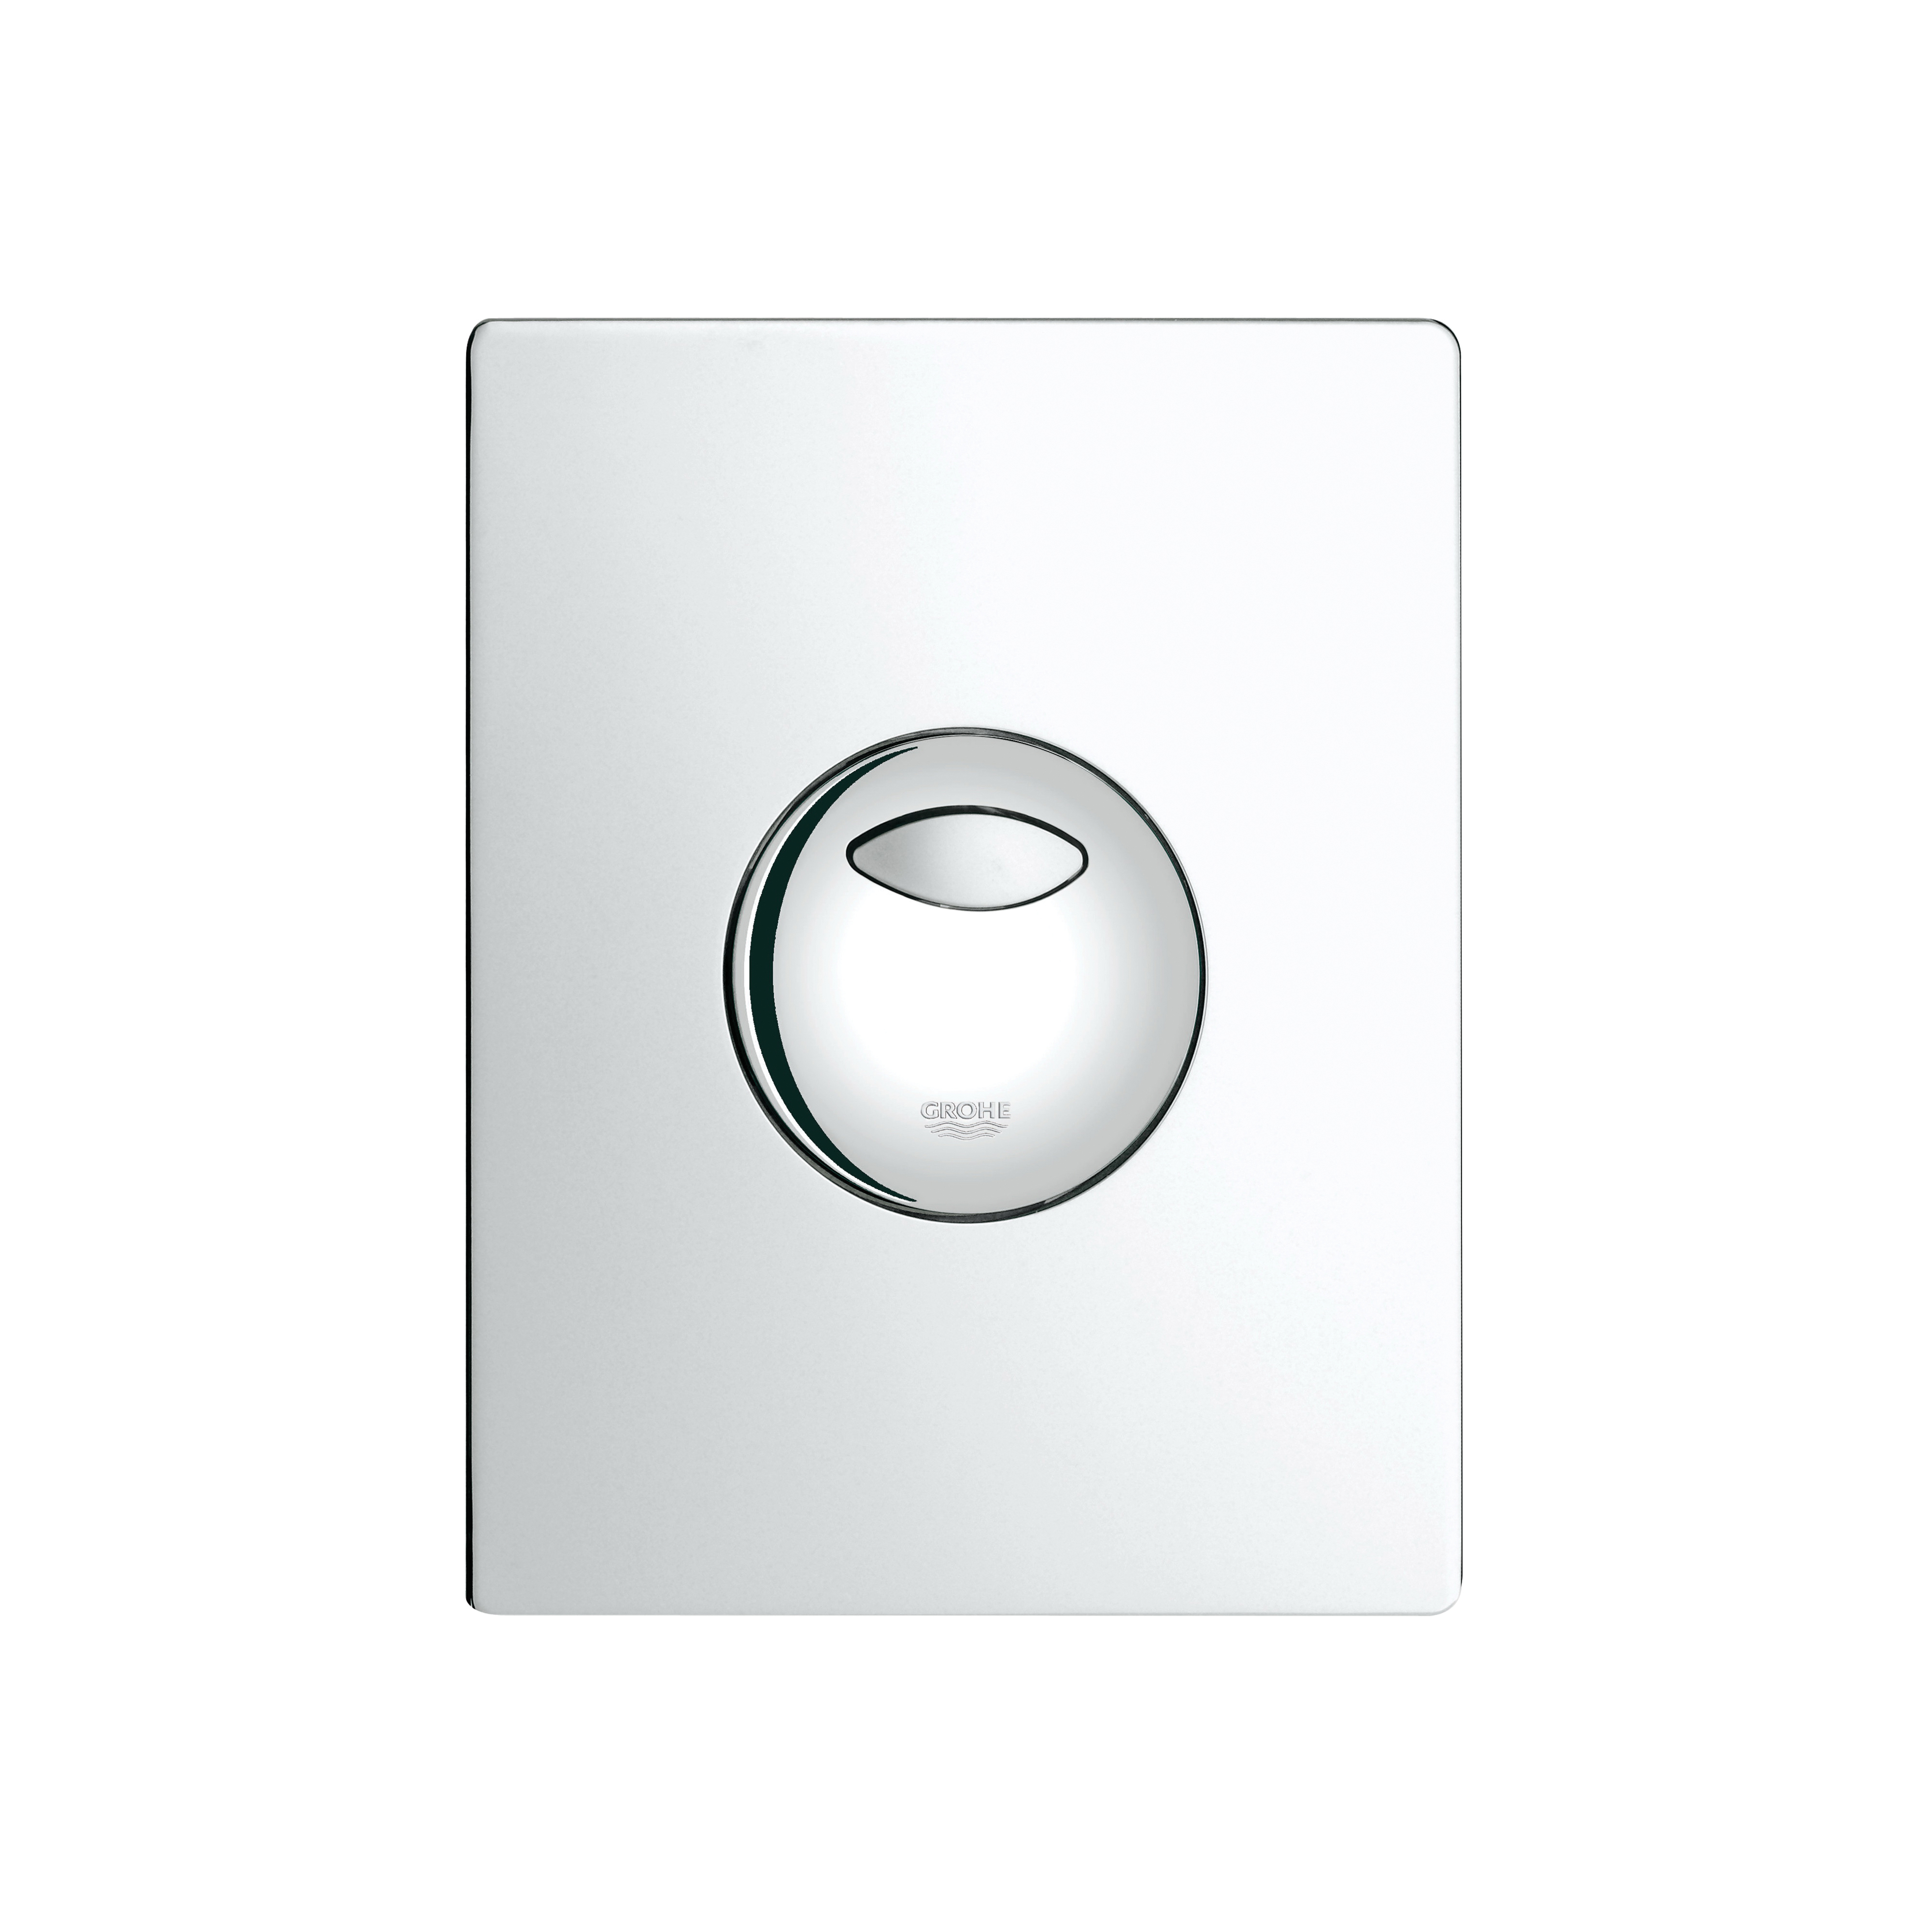 GROHE 38862000 Skate Wall Plate, For Use With Dual Flush or Start/Stop Actuation and AV1 Pneumatic Discharge Valve, ABS, StarLight® Chrome Plated, Import